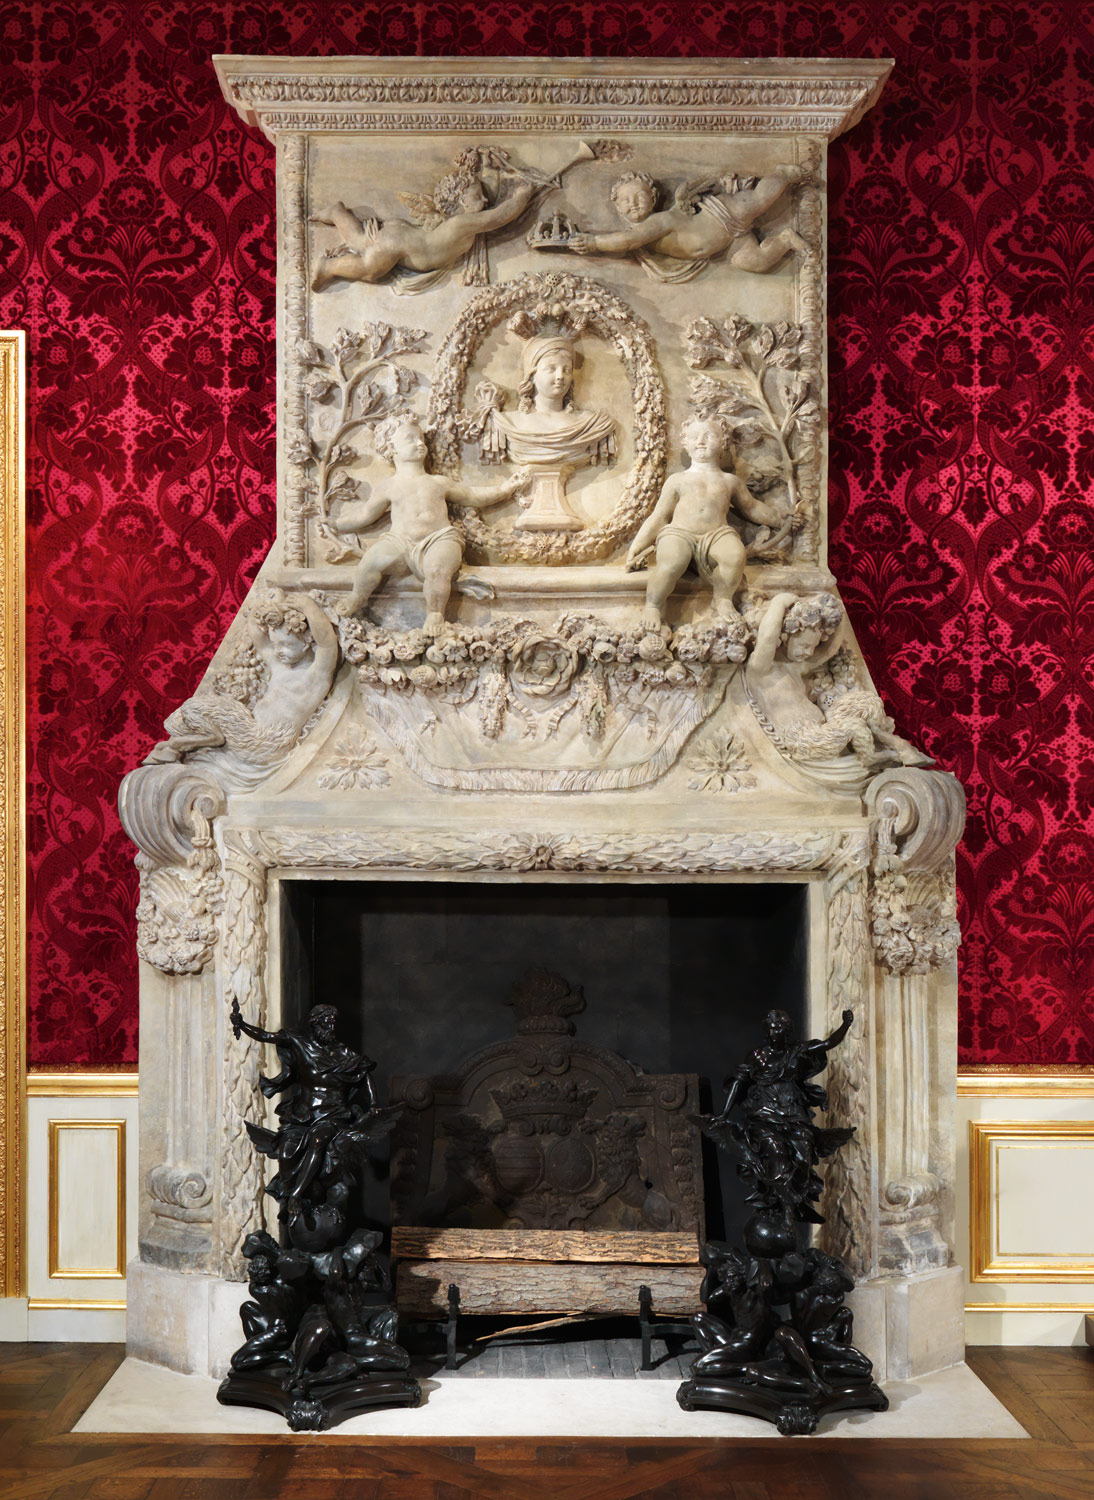 french decorative arts during the reign of louis xiv  smallsword smallsword middot chimneypiece chemineacutee chimneypiece chemineacutee middot louis xiv